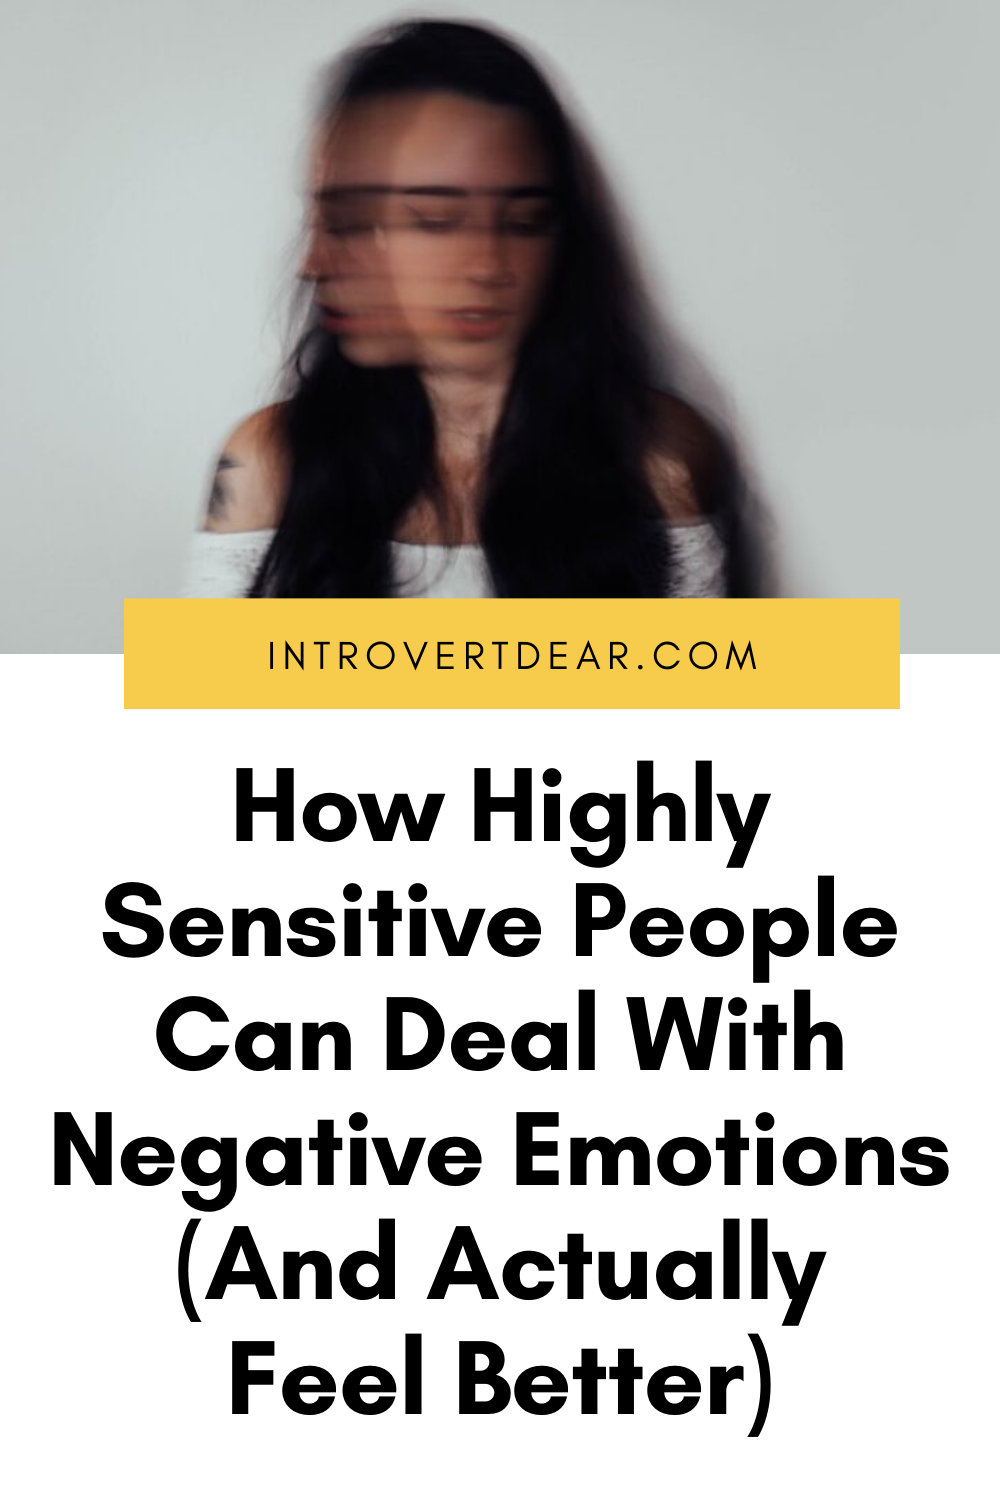 How Highly Sensitive People Can Deal With Negative Emotions (And Actually Feel Better)